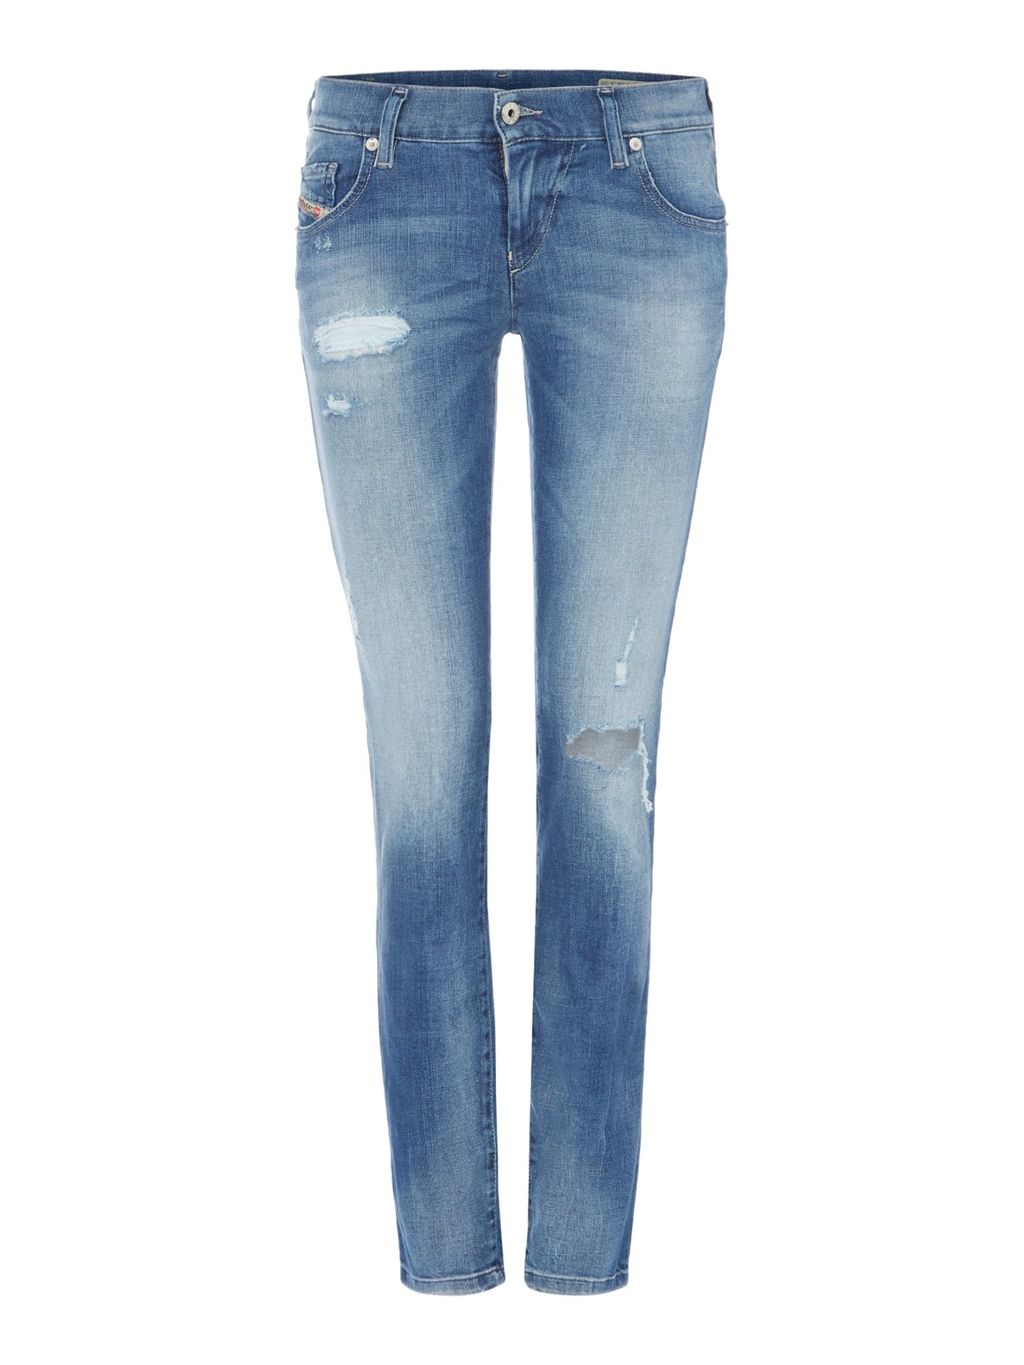 Grupee. 0854 D Slim Jeans Leg 30, Blue - length: standard; pattern: plain; pocket detail: traditional 5 pocket; style: slim leg; waist: mid/regular rise; predominant colour: denim; occasions: casual; fibres: cotton - stretch; jeans detail: shading down centre of thigh, rips; texture group: denim; pattern type: fabric; season: s/s 2016